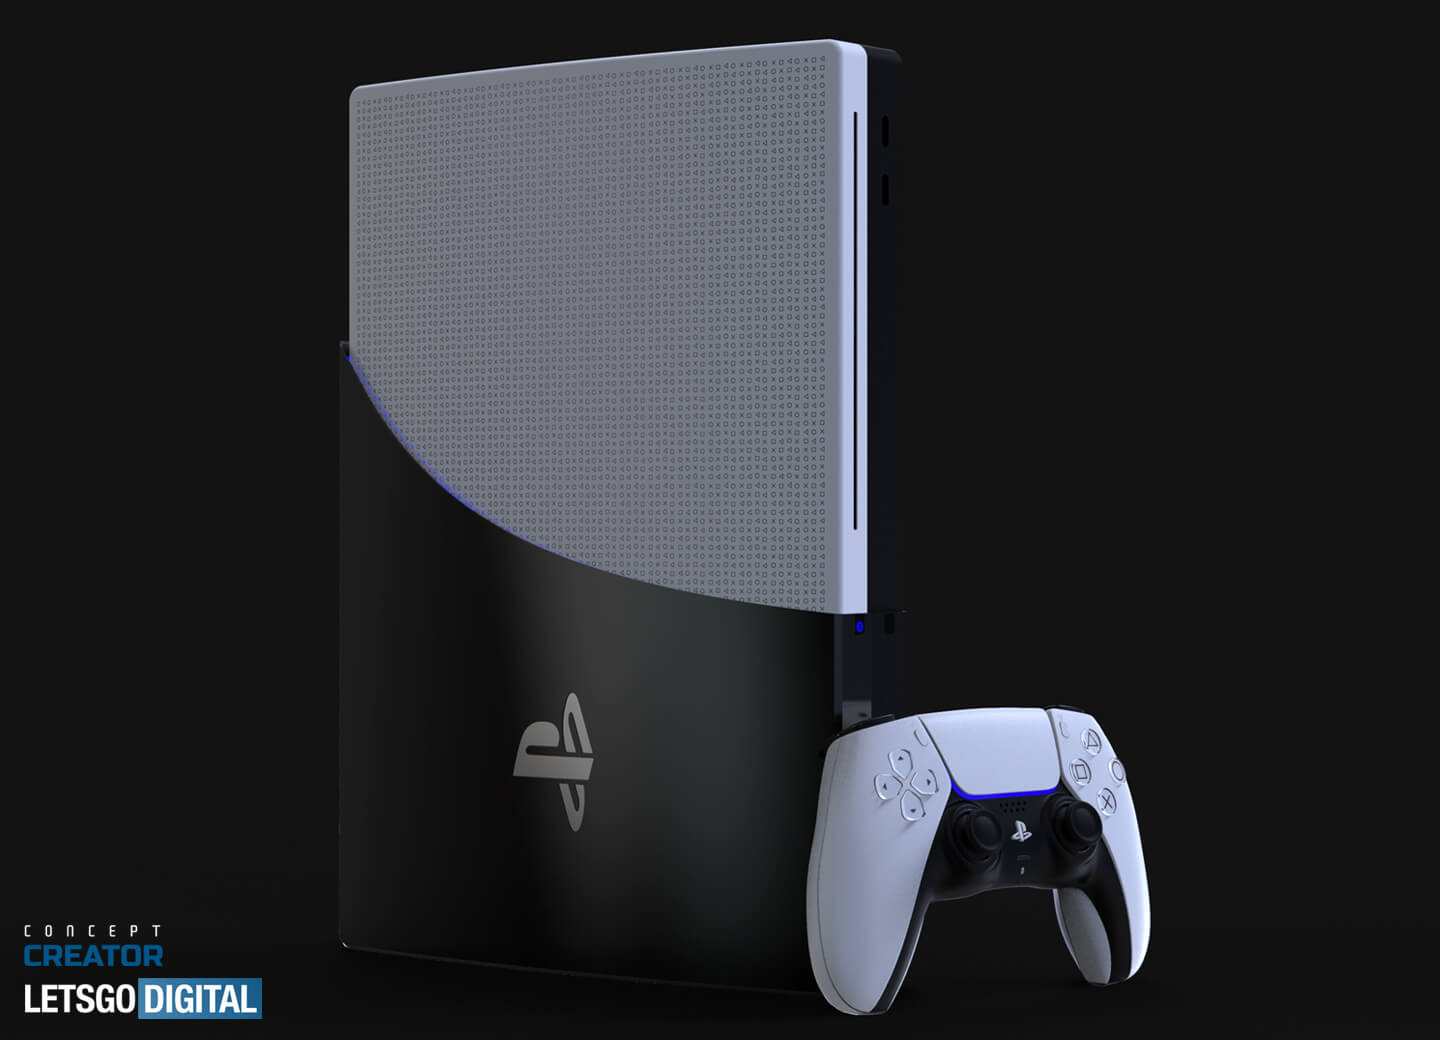 Console games PS5